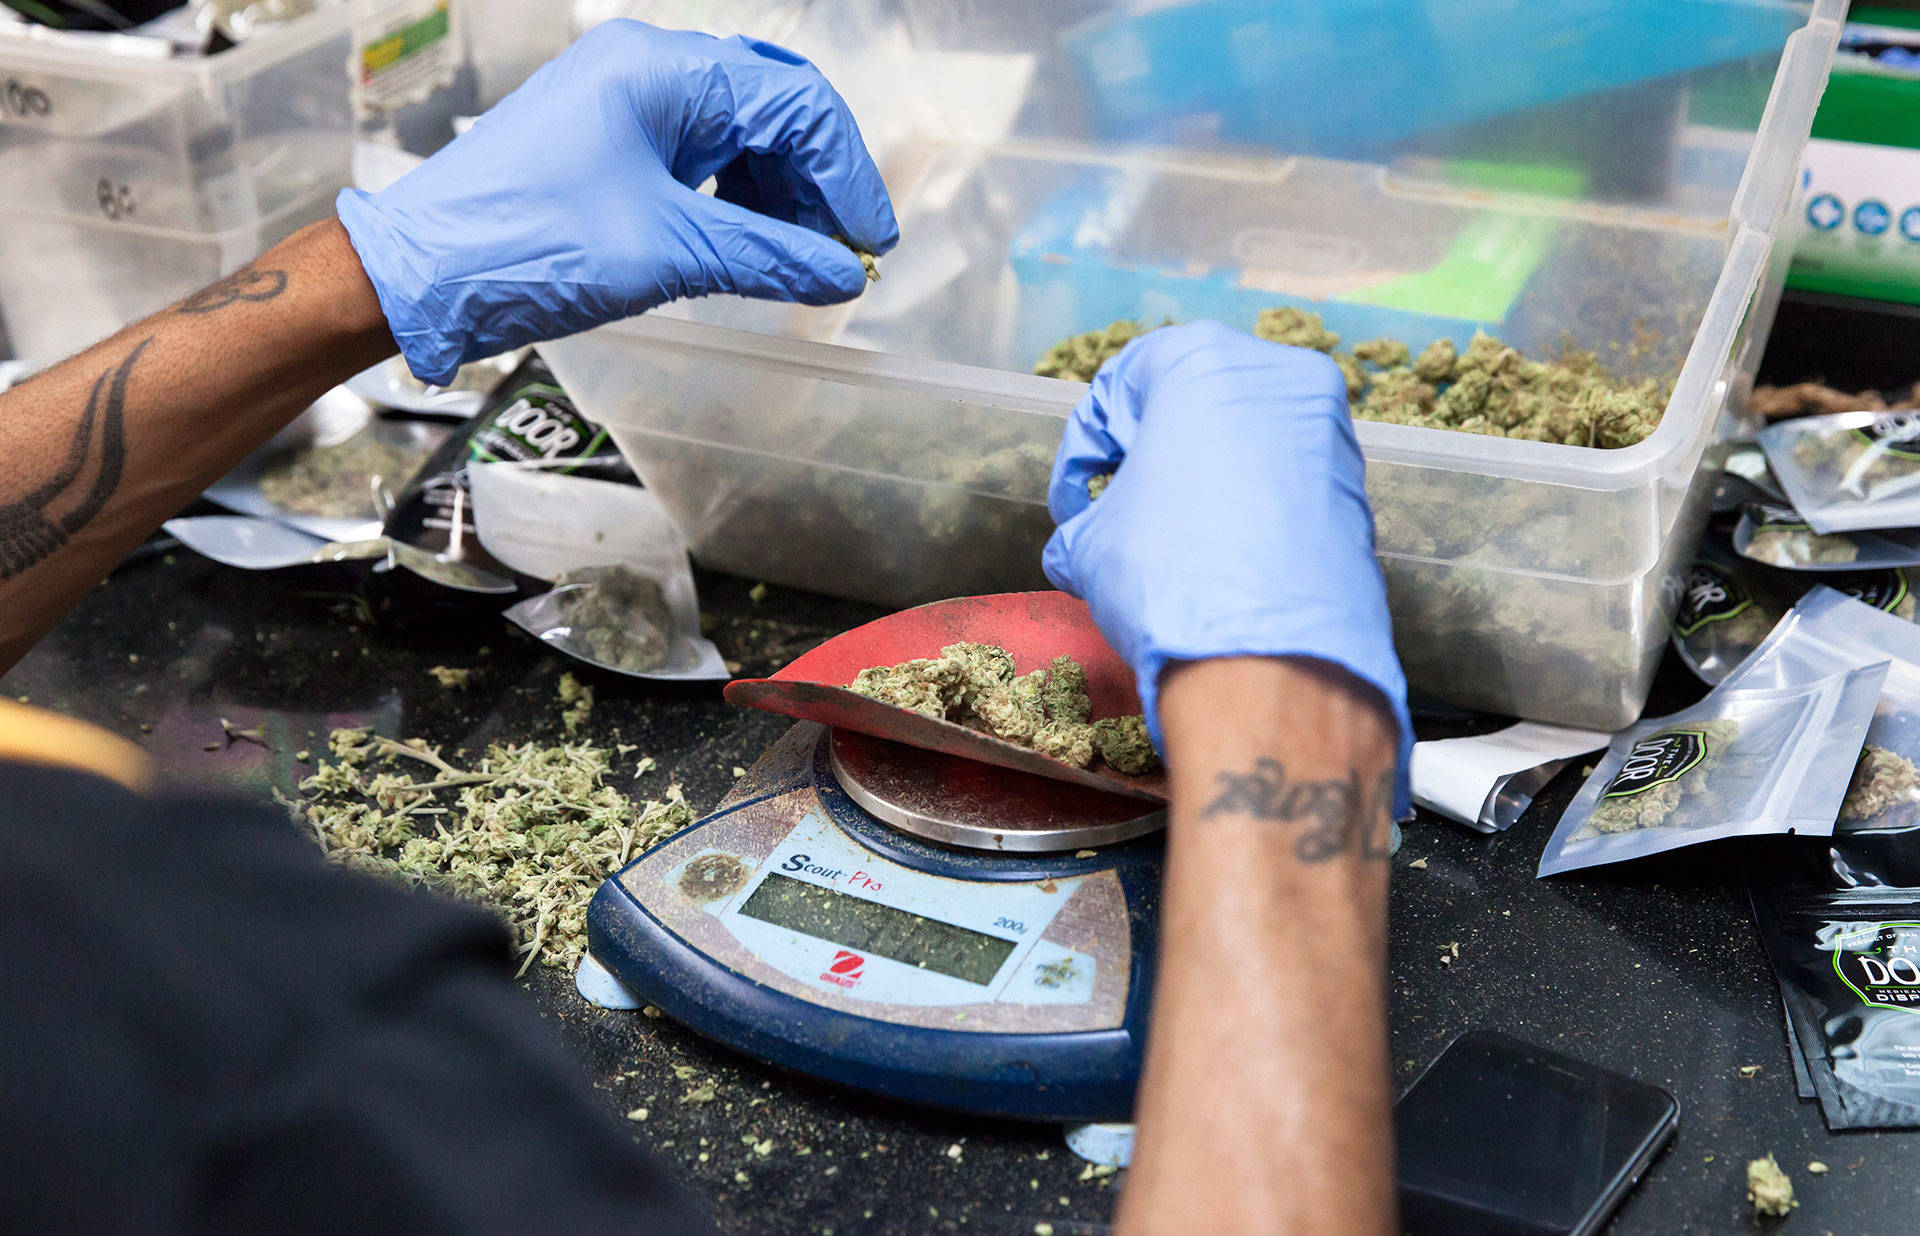 Cannabis buds are weighed before being packaged for sale at the Green Door Dispensary in San Francisco. Brittany Hosea-Small/KQED